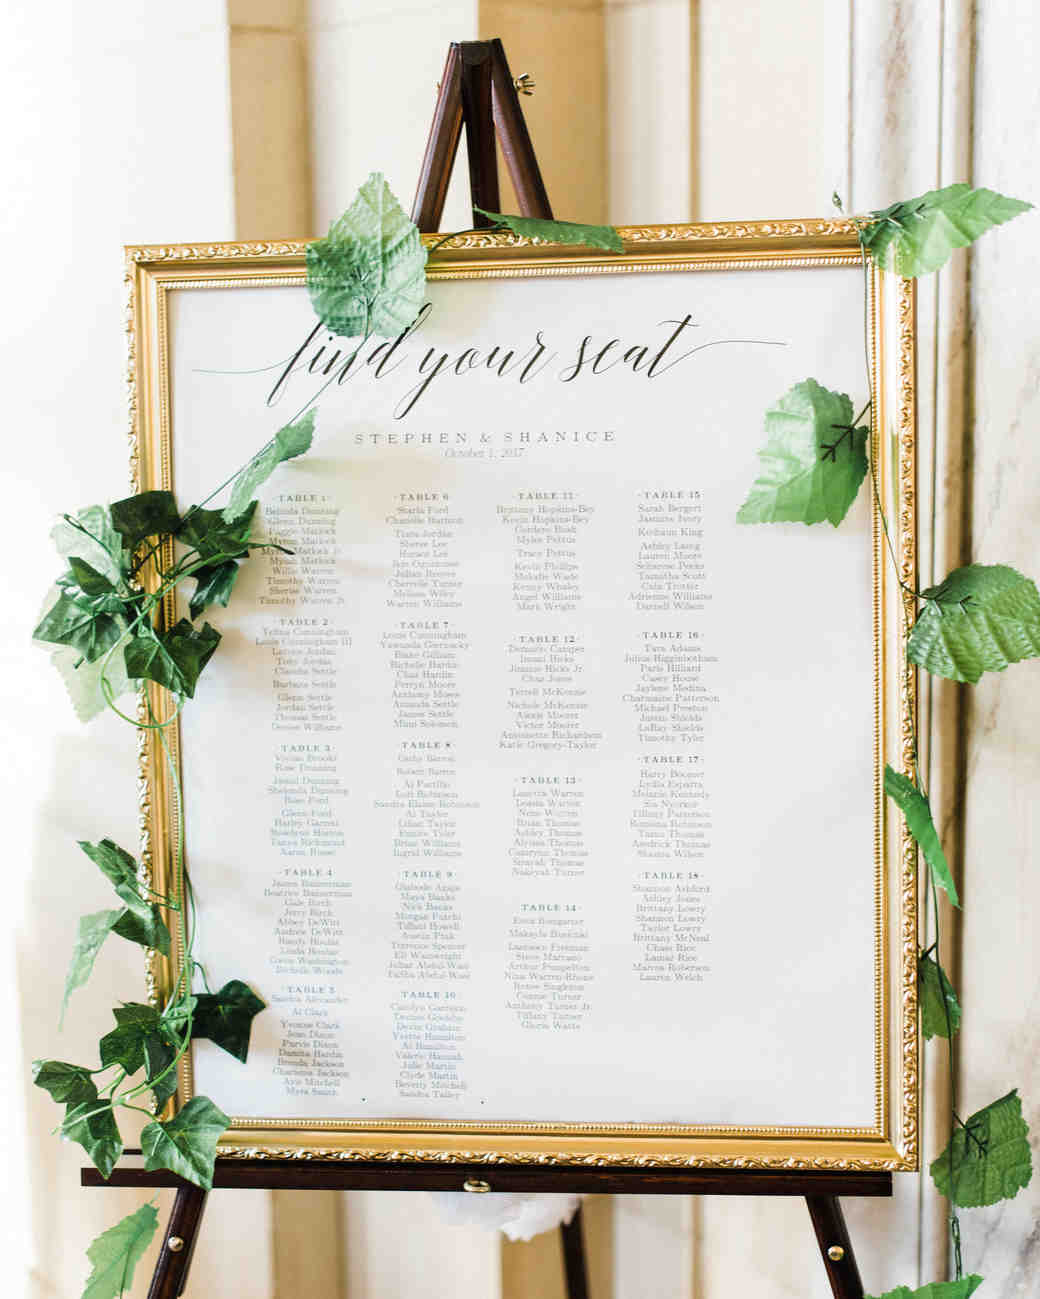 shanice & stephen wedding seating chart